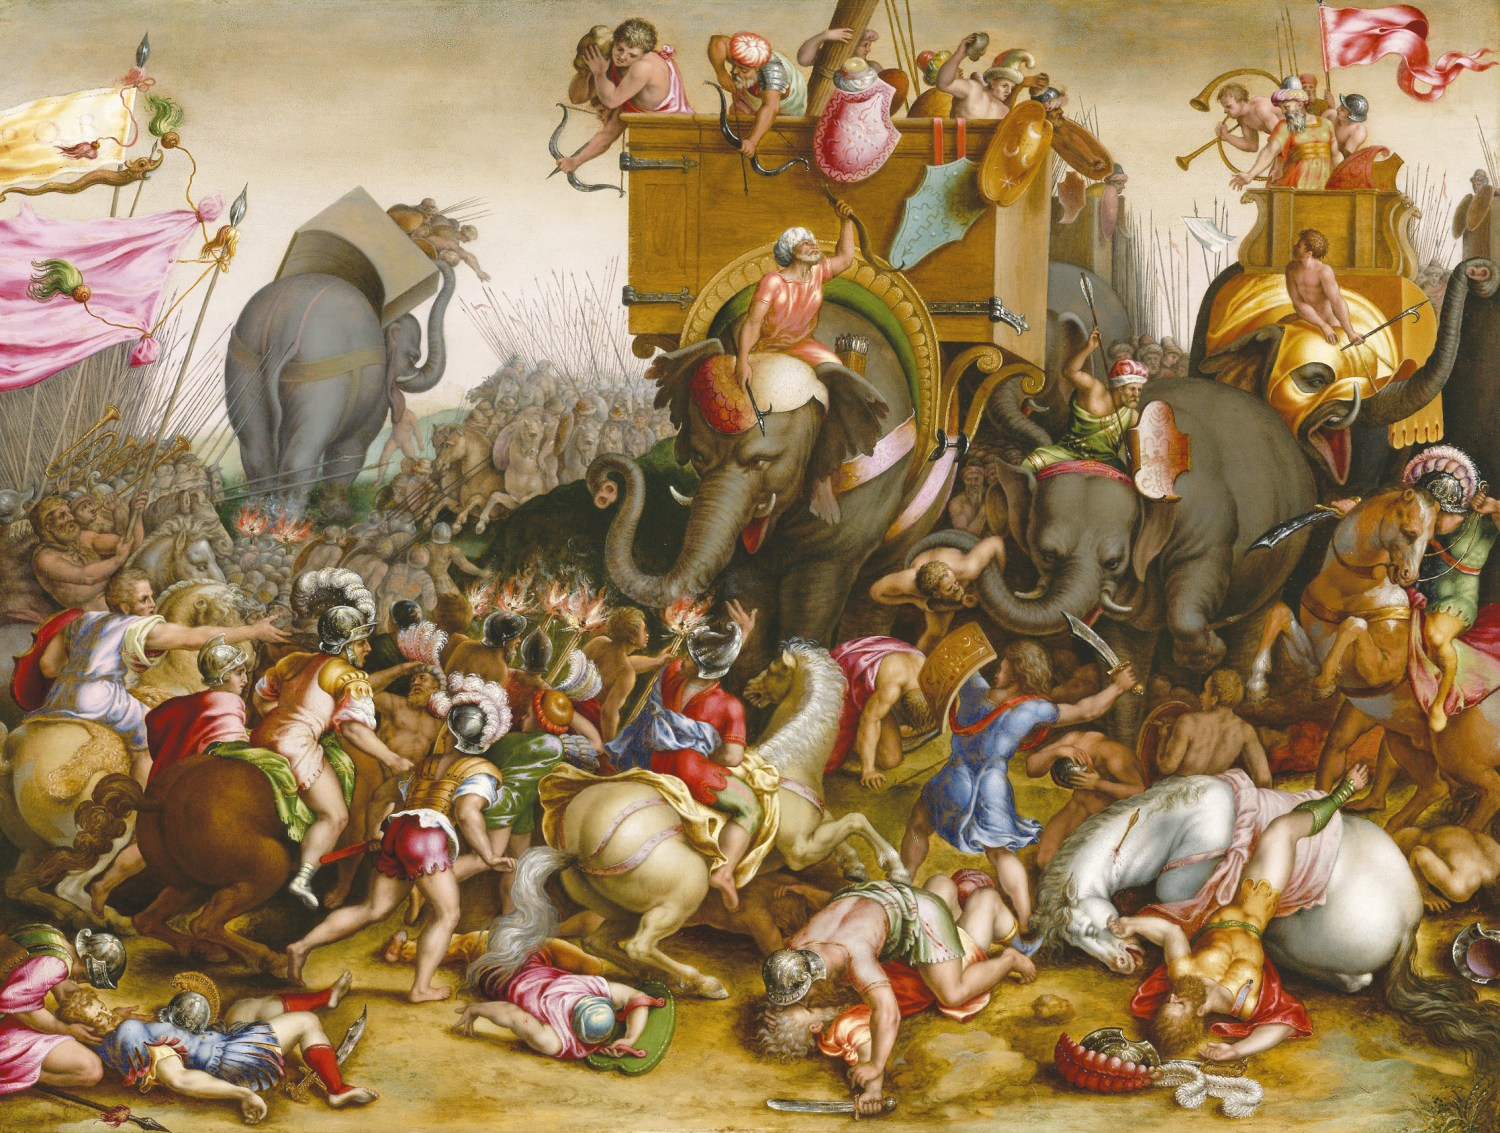 Below The Battle of Zama, 202 BC. Detail from a painting by Cornelis Cort, c.1567.